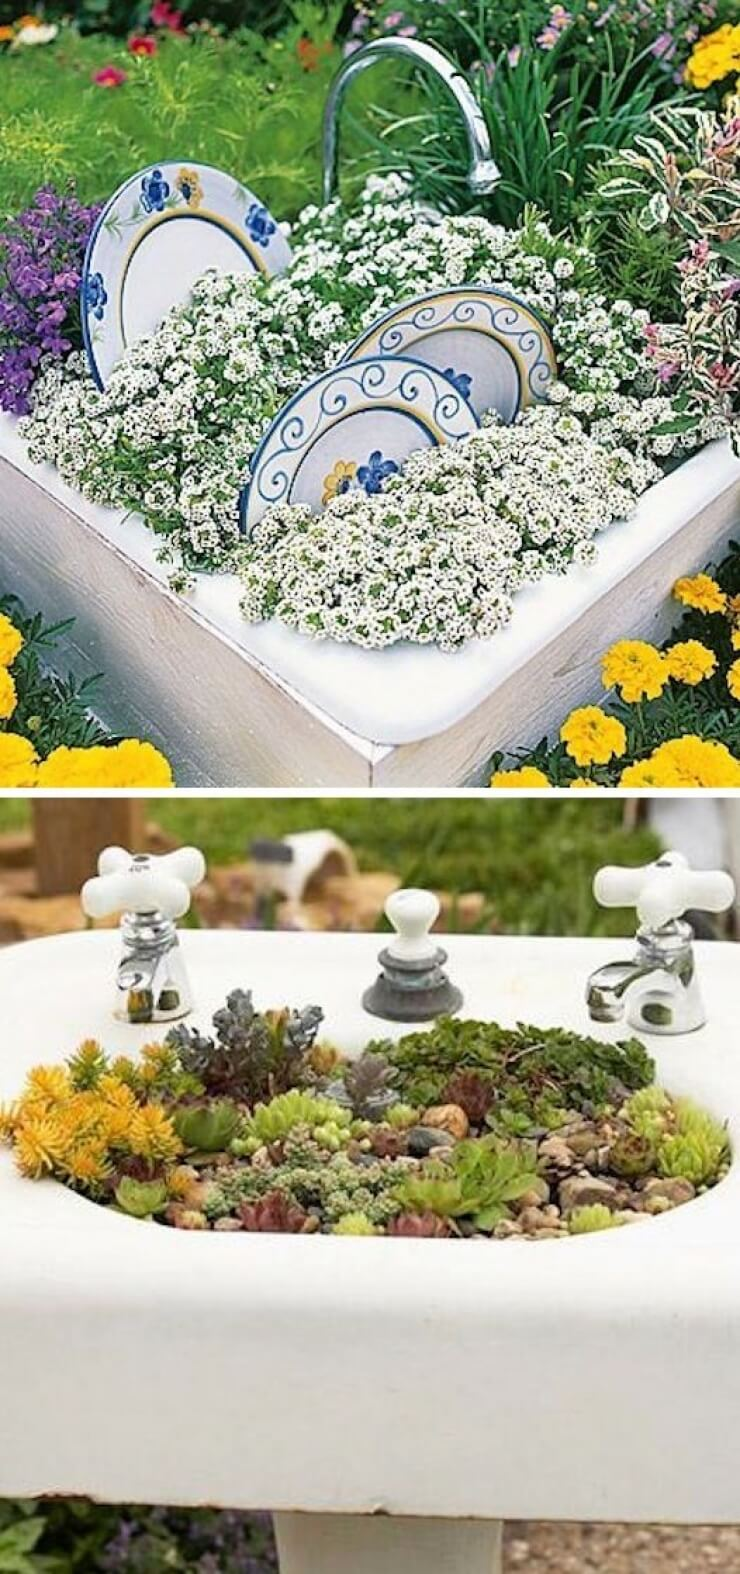 DIY Vintage Sink Garden Planter